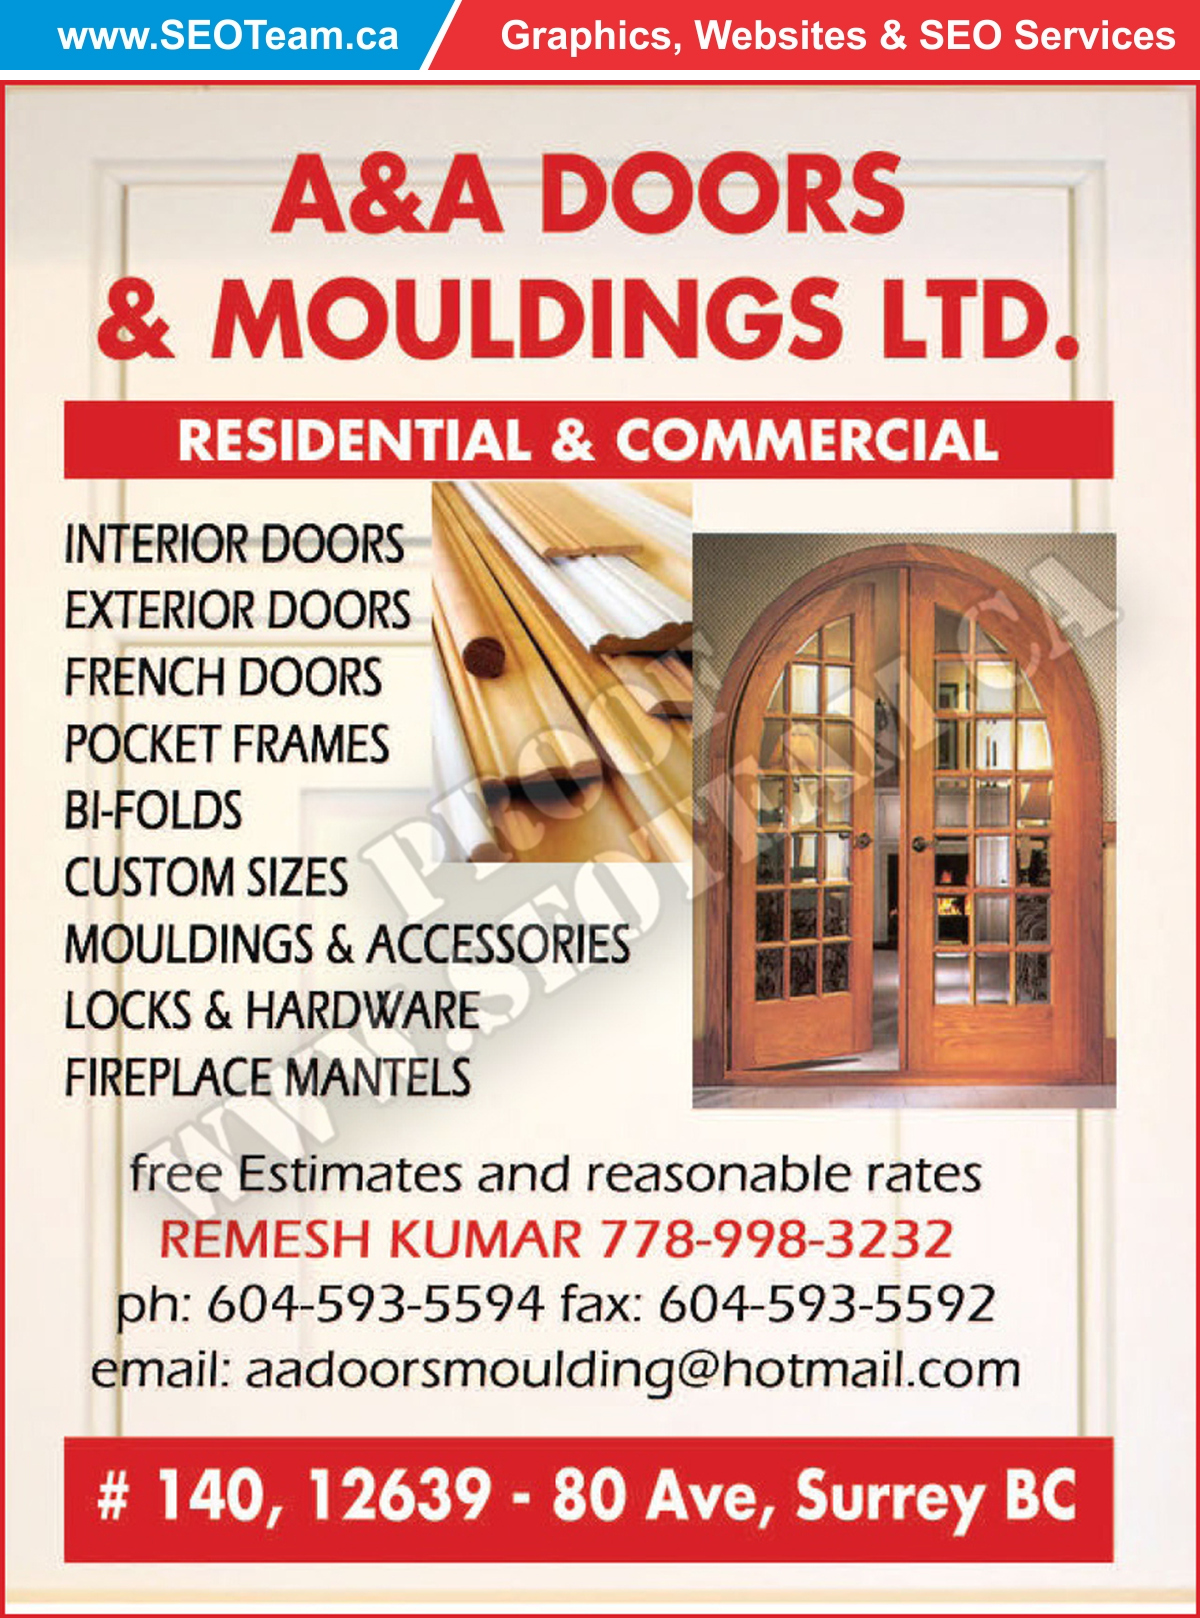 Aaa Doors And Mouldings Ltd Surrey BC - Design By SEOTeam.ca